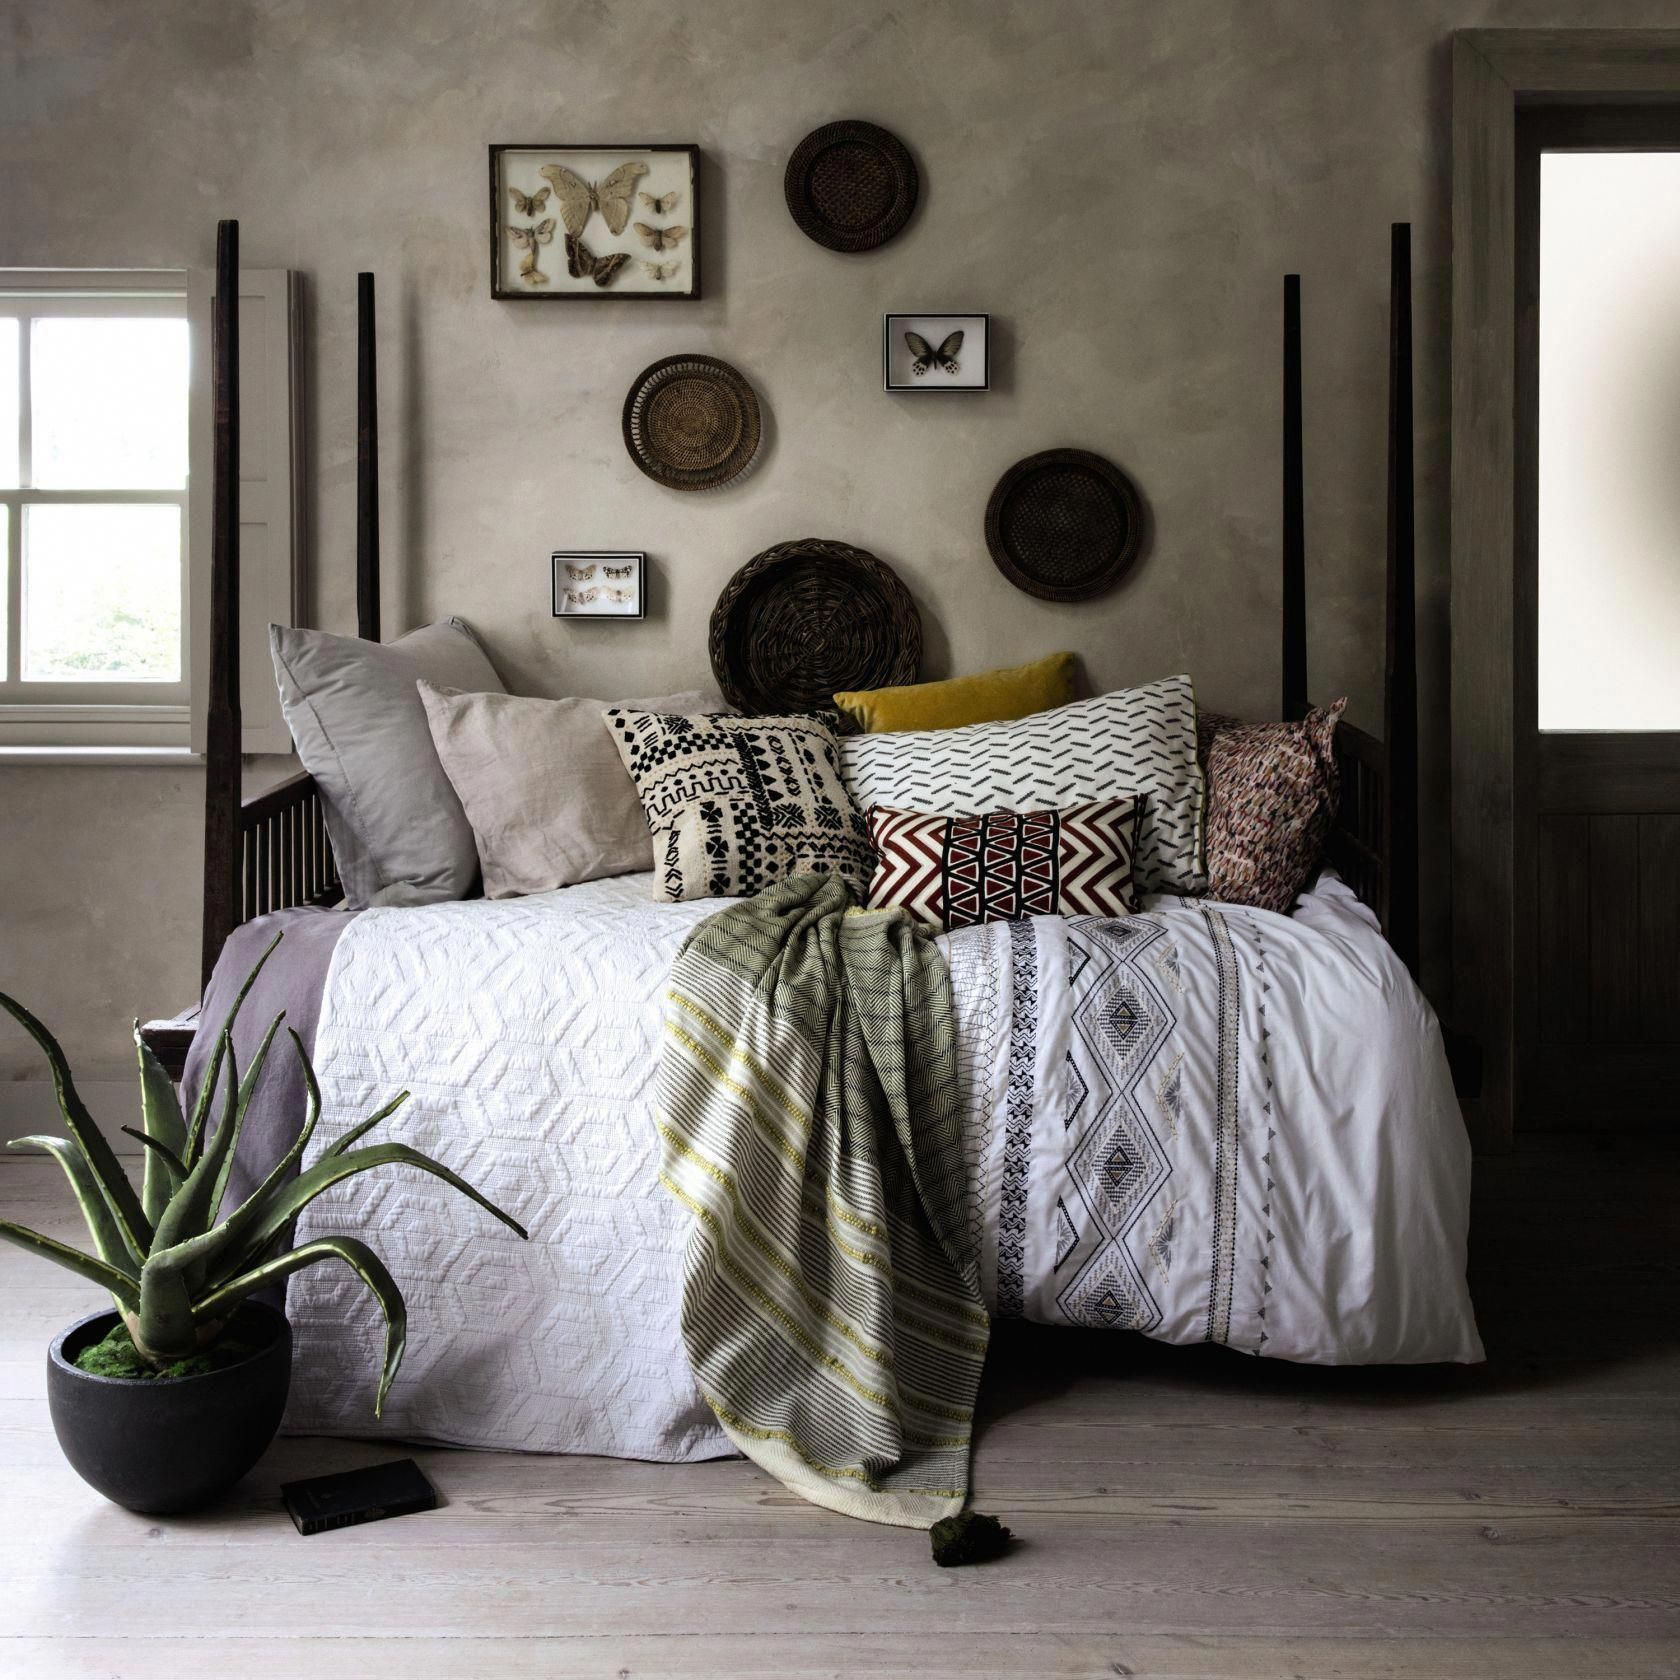 Geometric prints looks great in a Scandi scheme. If you are going for a very modern take on the look, you can introduce bright colour accents, but for a cosier look, try muted, natural tones, or geometric knits and fabrics.  #bedroom #swedishhome #scandi #scandistyle #scandibedroom #bedroominspiration #homeinspiration #periodhomes  #geometricprints